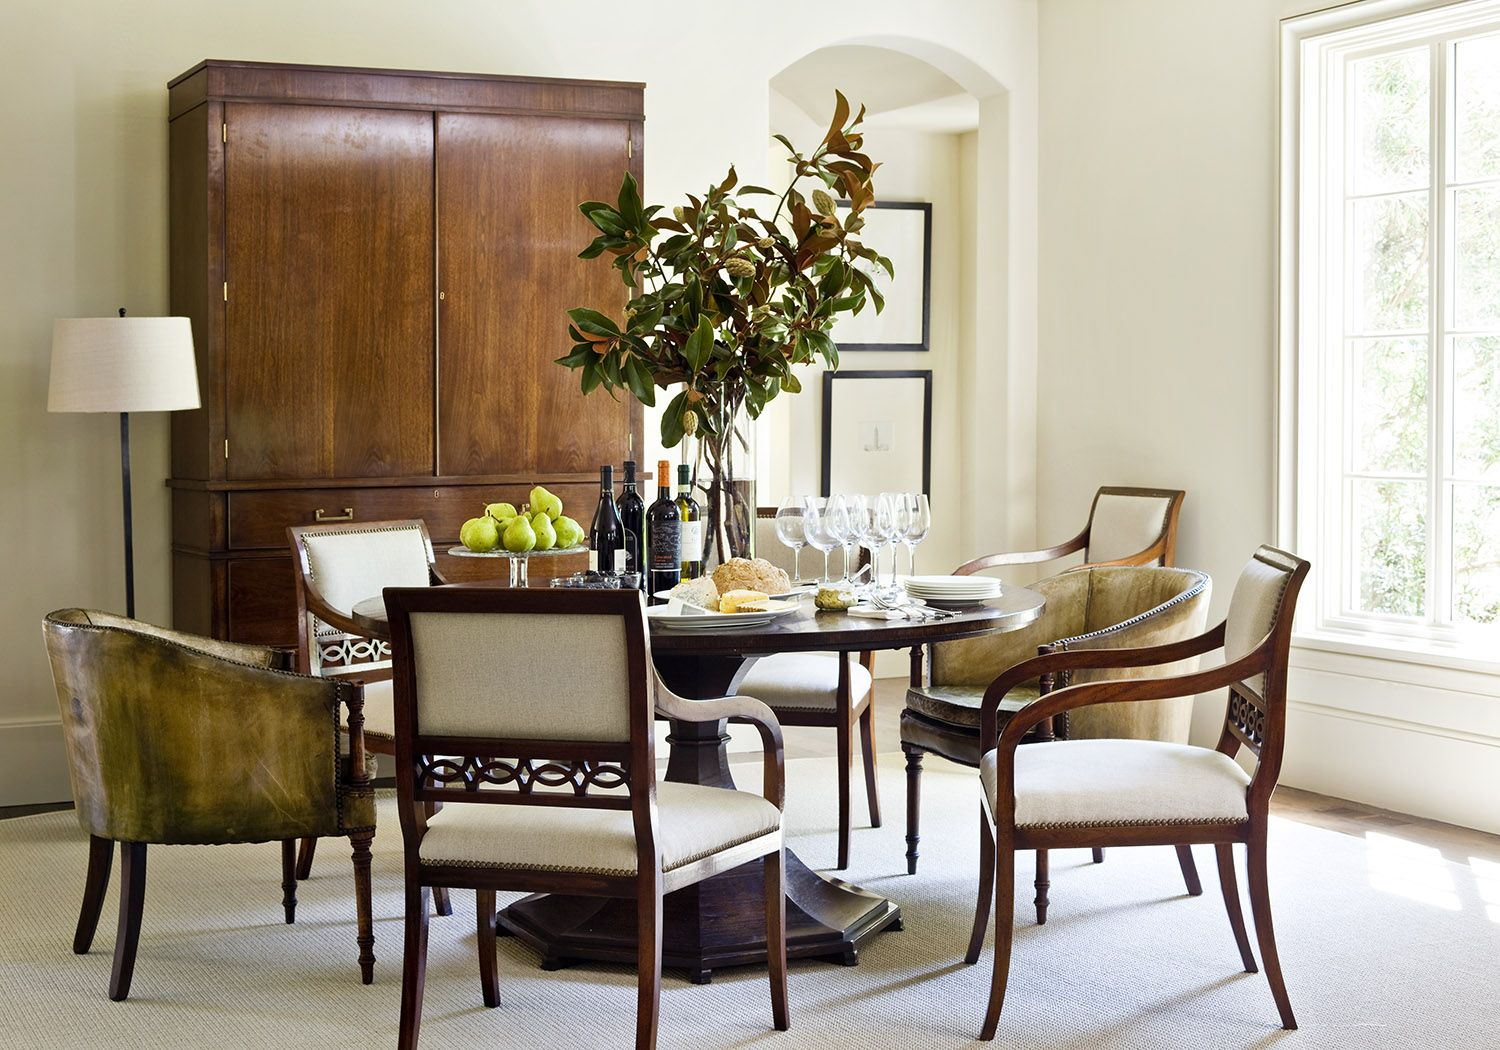 Robert Brown Interior Design Luxury Dining Room Interior Design